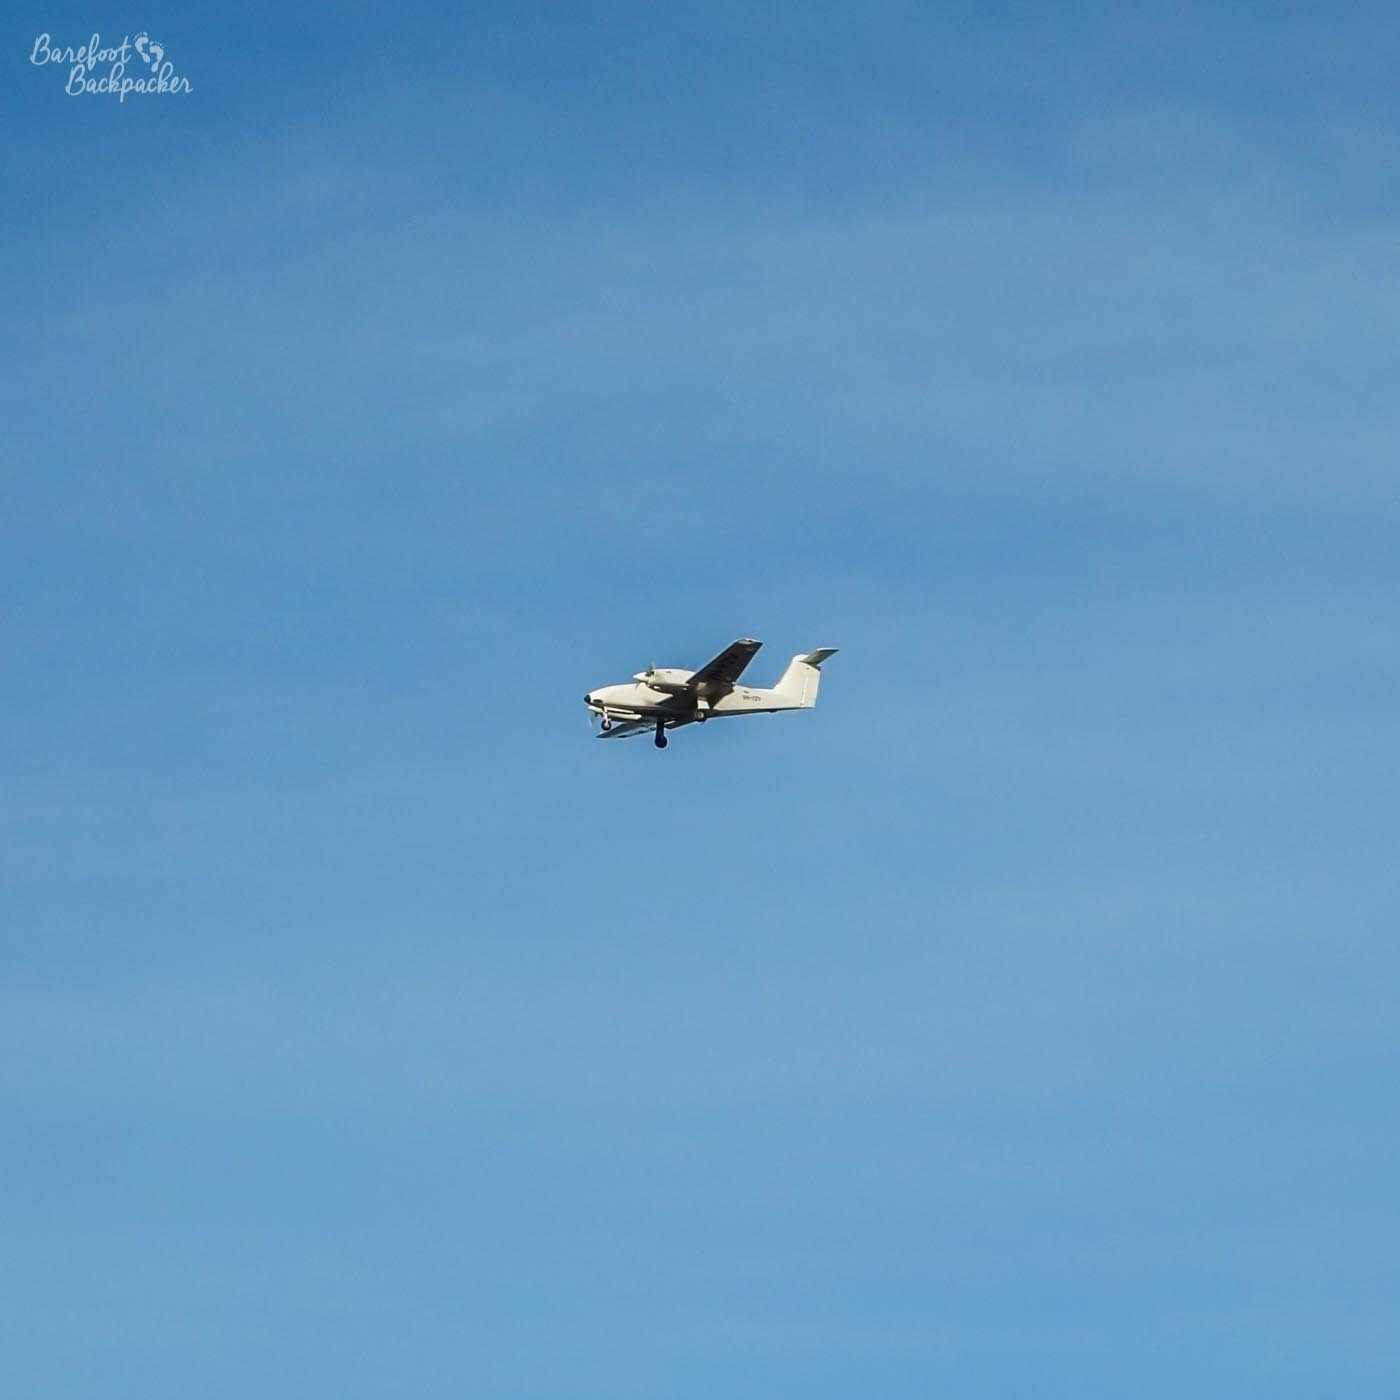 A small plane flying in the blue sky over Rottnest Island